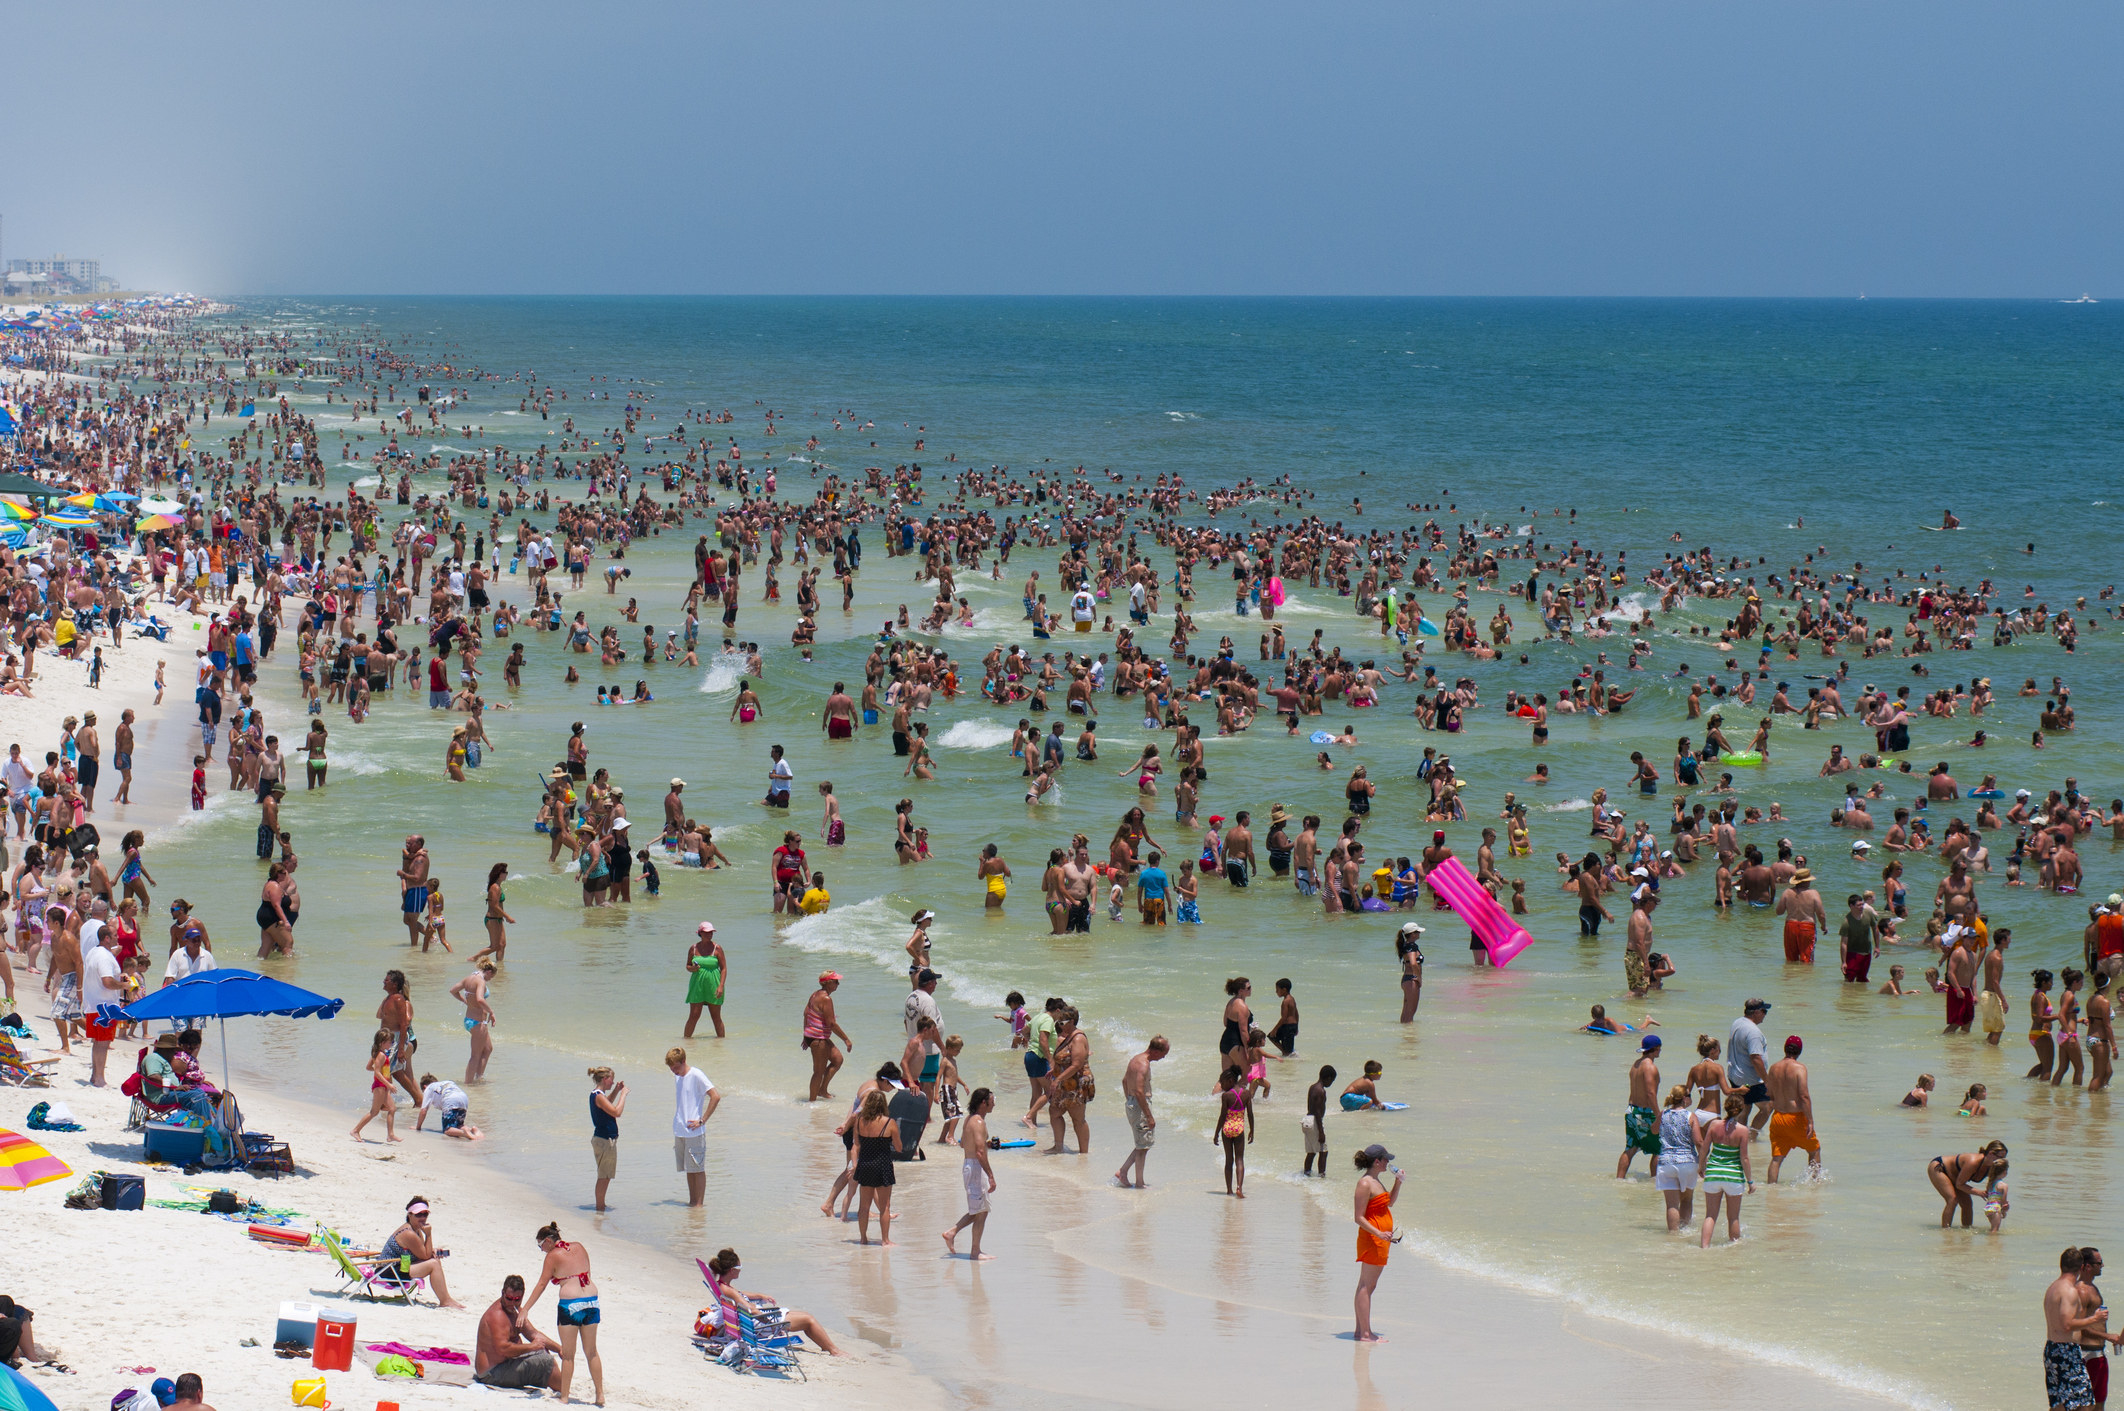 A beach in Pensacola filled with people